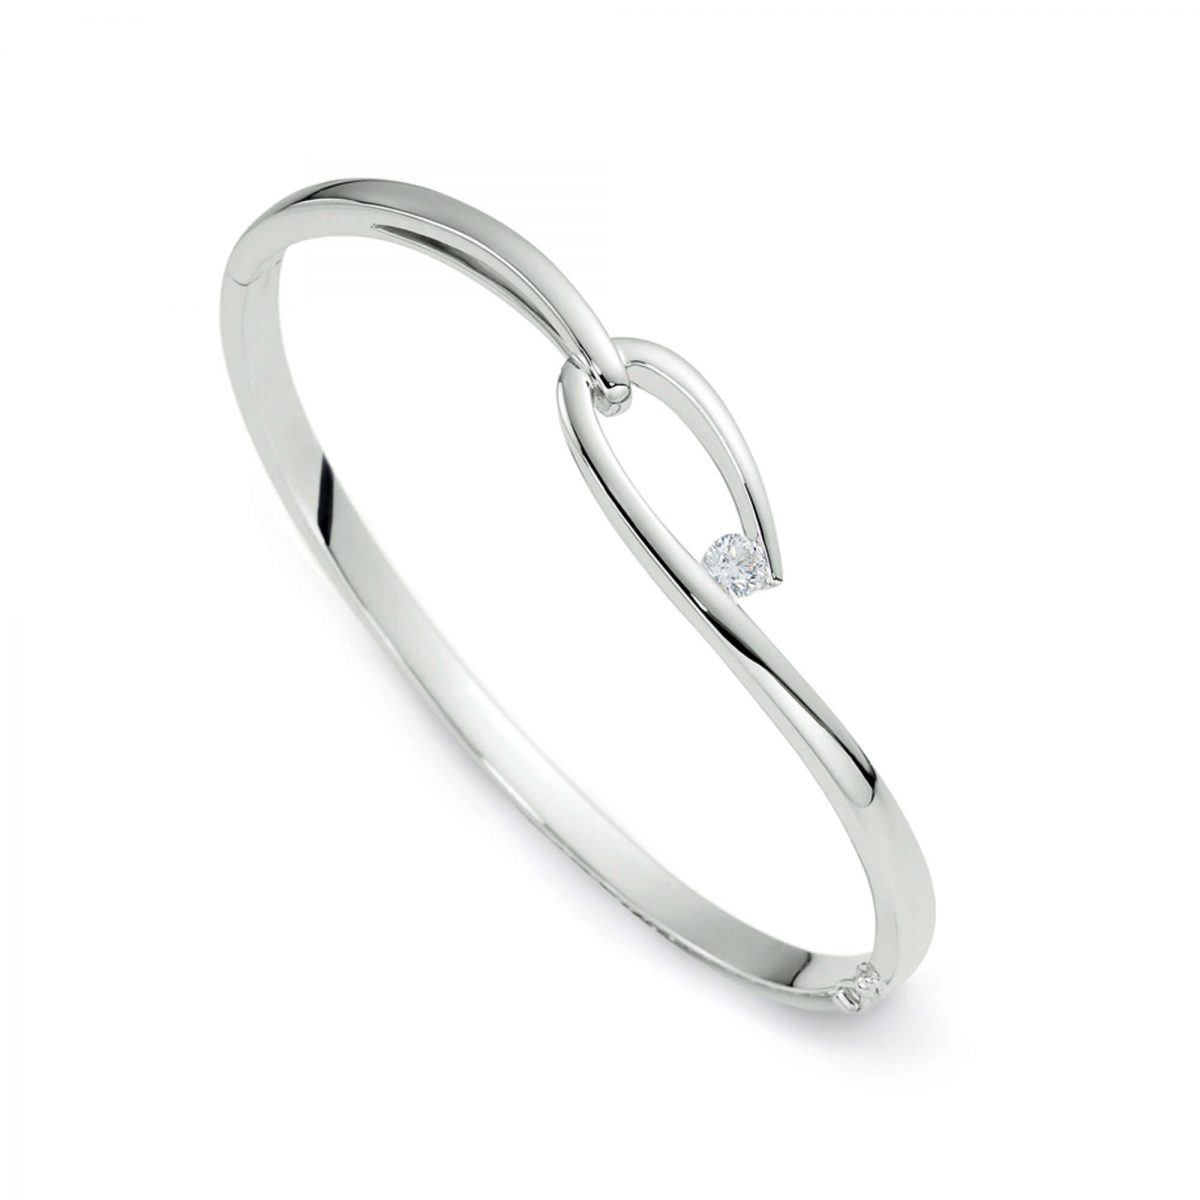 product/y/o/you-re-the-one-bangle-1_1.jpg;;product/d/m/dmr-packaging_202.jpg